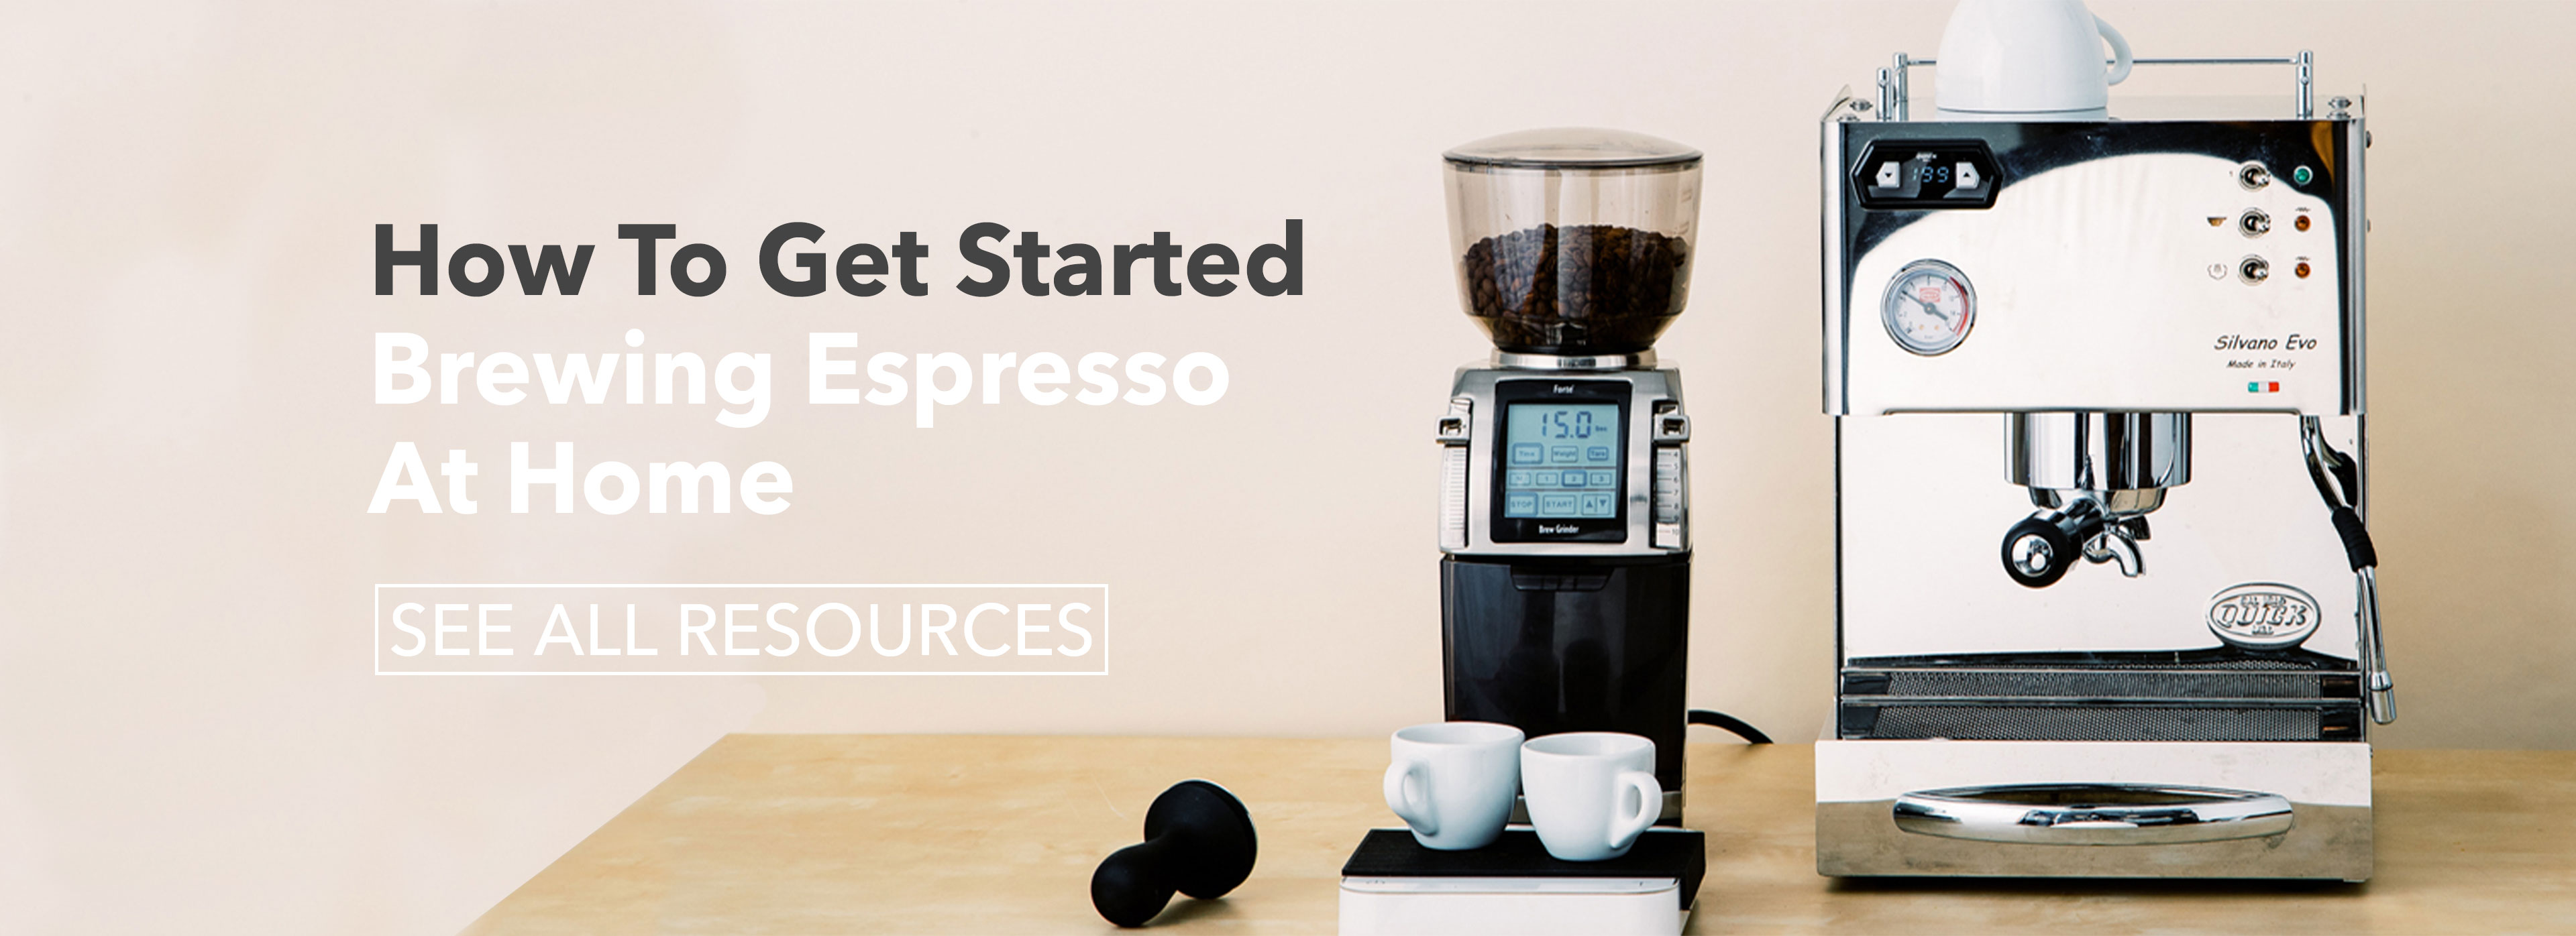 how to get started brewing espresso at home